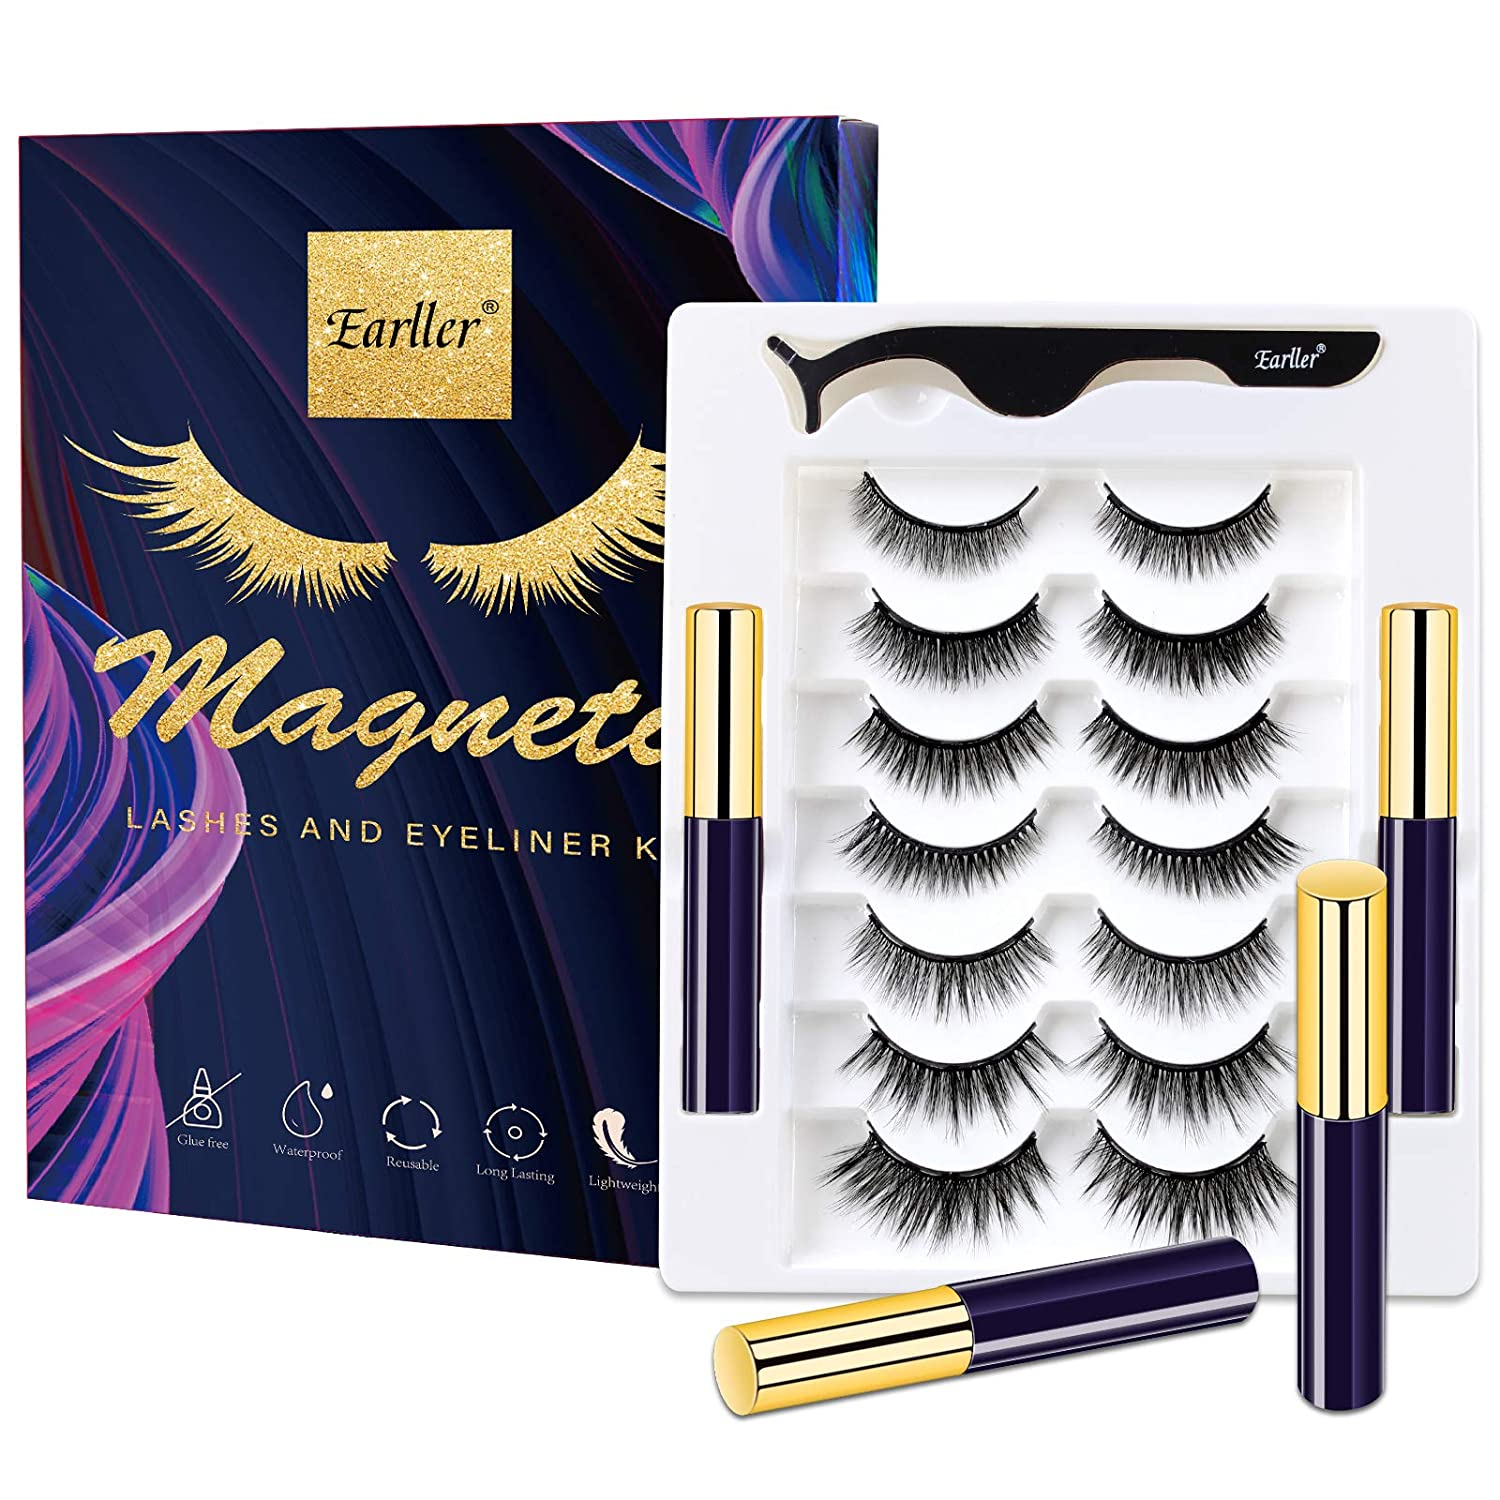 EARLLER 2020 Magnetic Eyelashes with Eyeliner Kit,7 Pairs Natural Look False Lashes with Applicator - Easy to Apply and No Glue Needed, 3D & 5D Reusable Short and Long Eyelashes Set